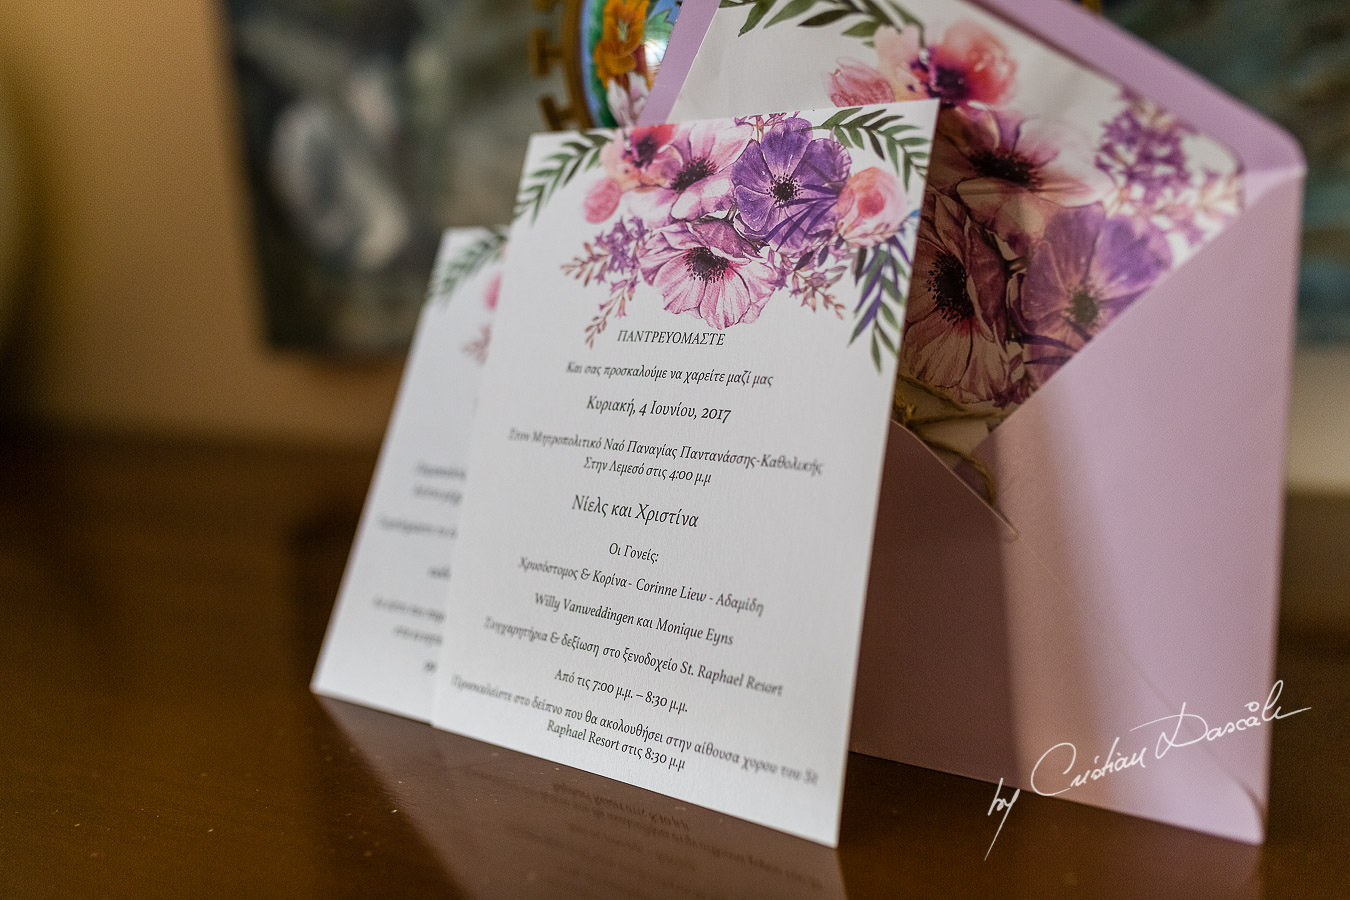 Beautiful Wedding Invitation photographed by Cristian Dascalu during a wedding ceremony at St Raphael Hotel in Limassol, Cyprus.